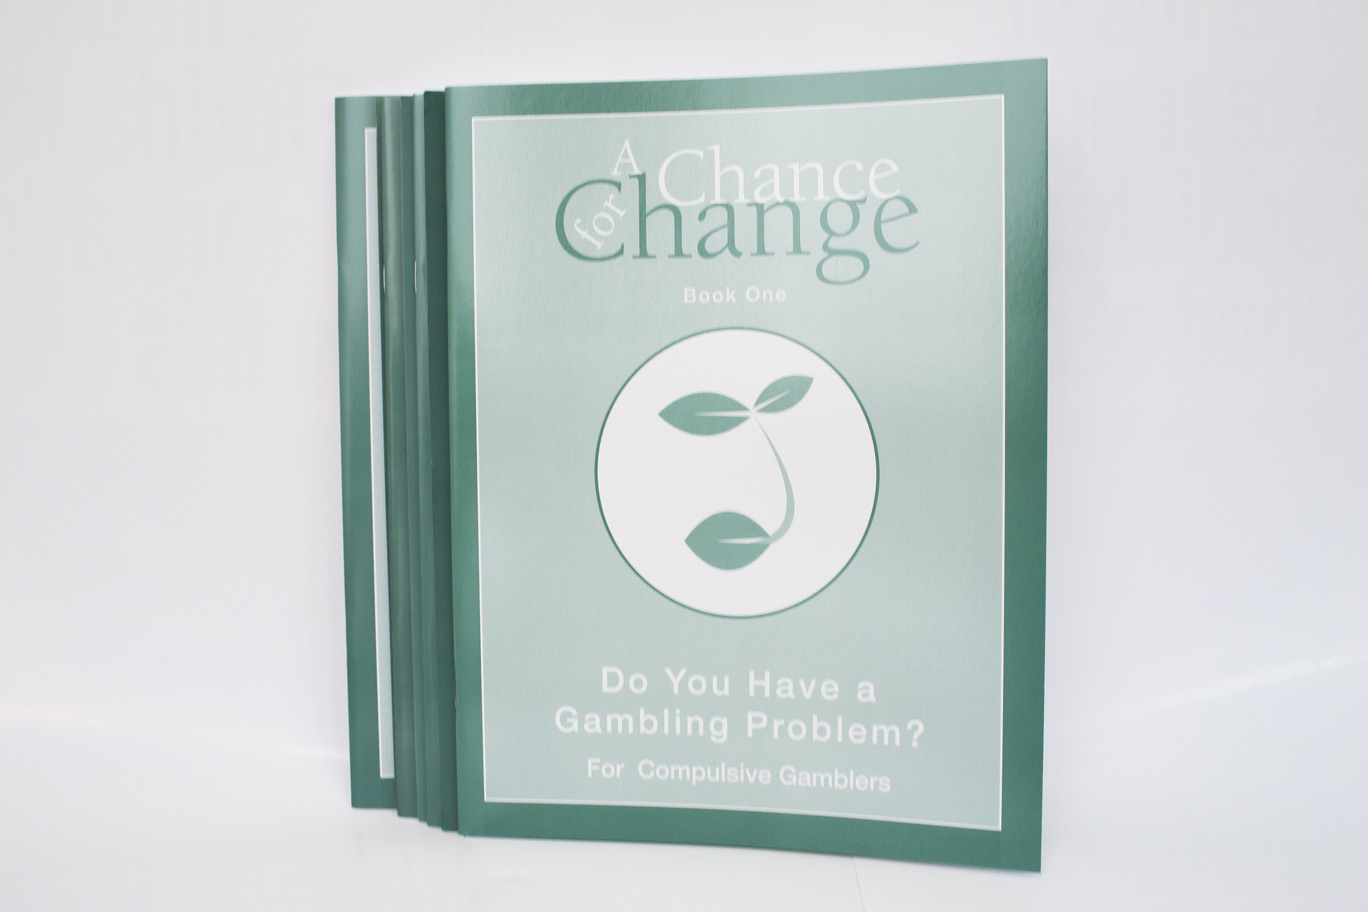 A Chance for Change: For Compulsive Gamblers